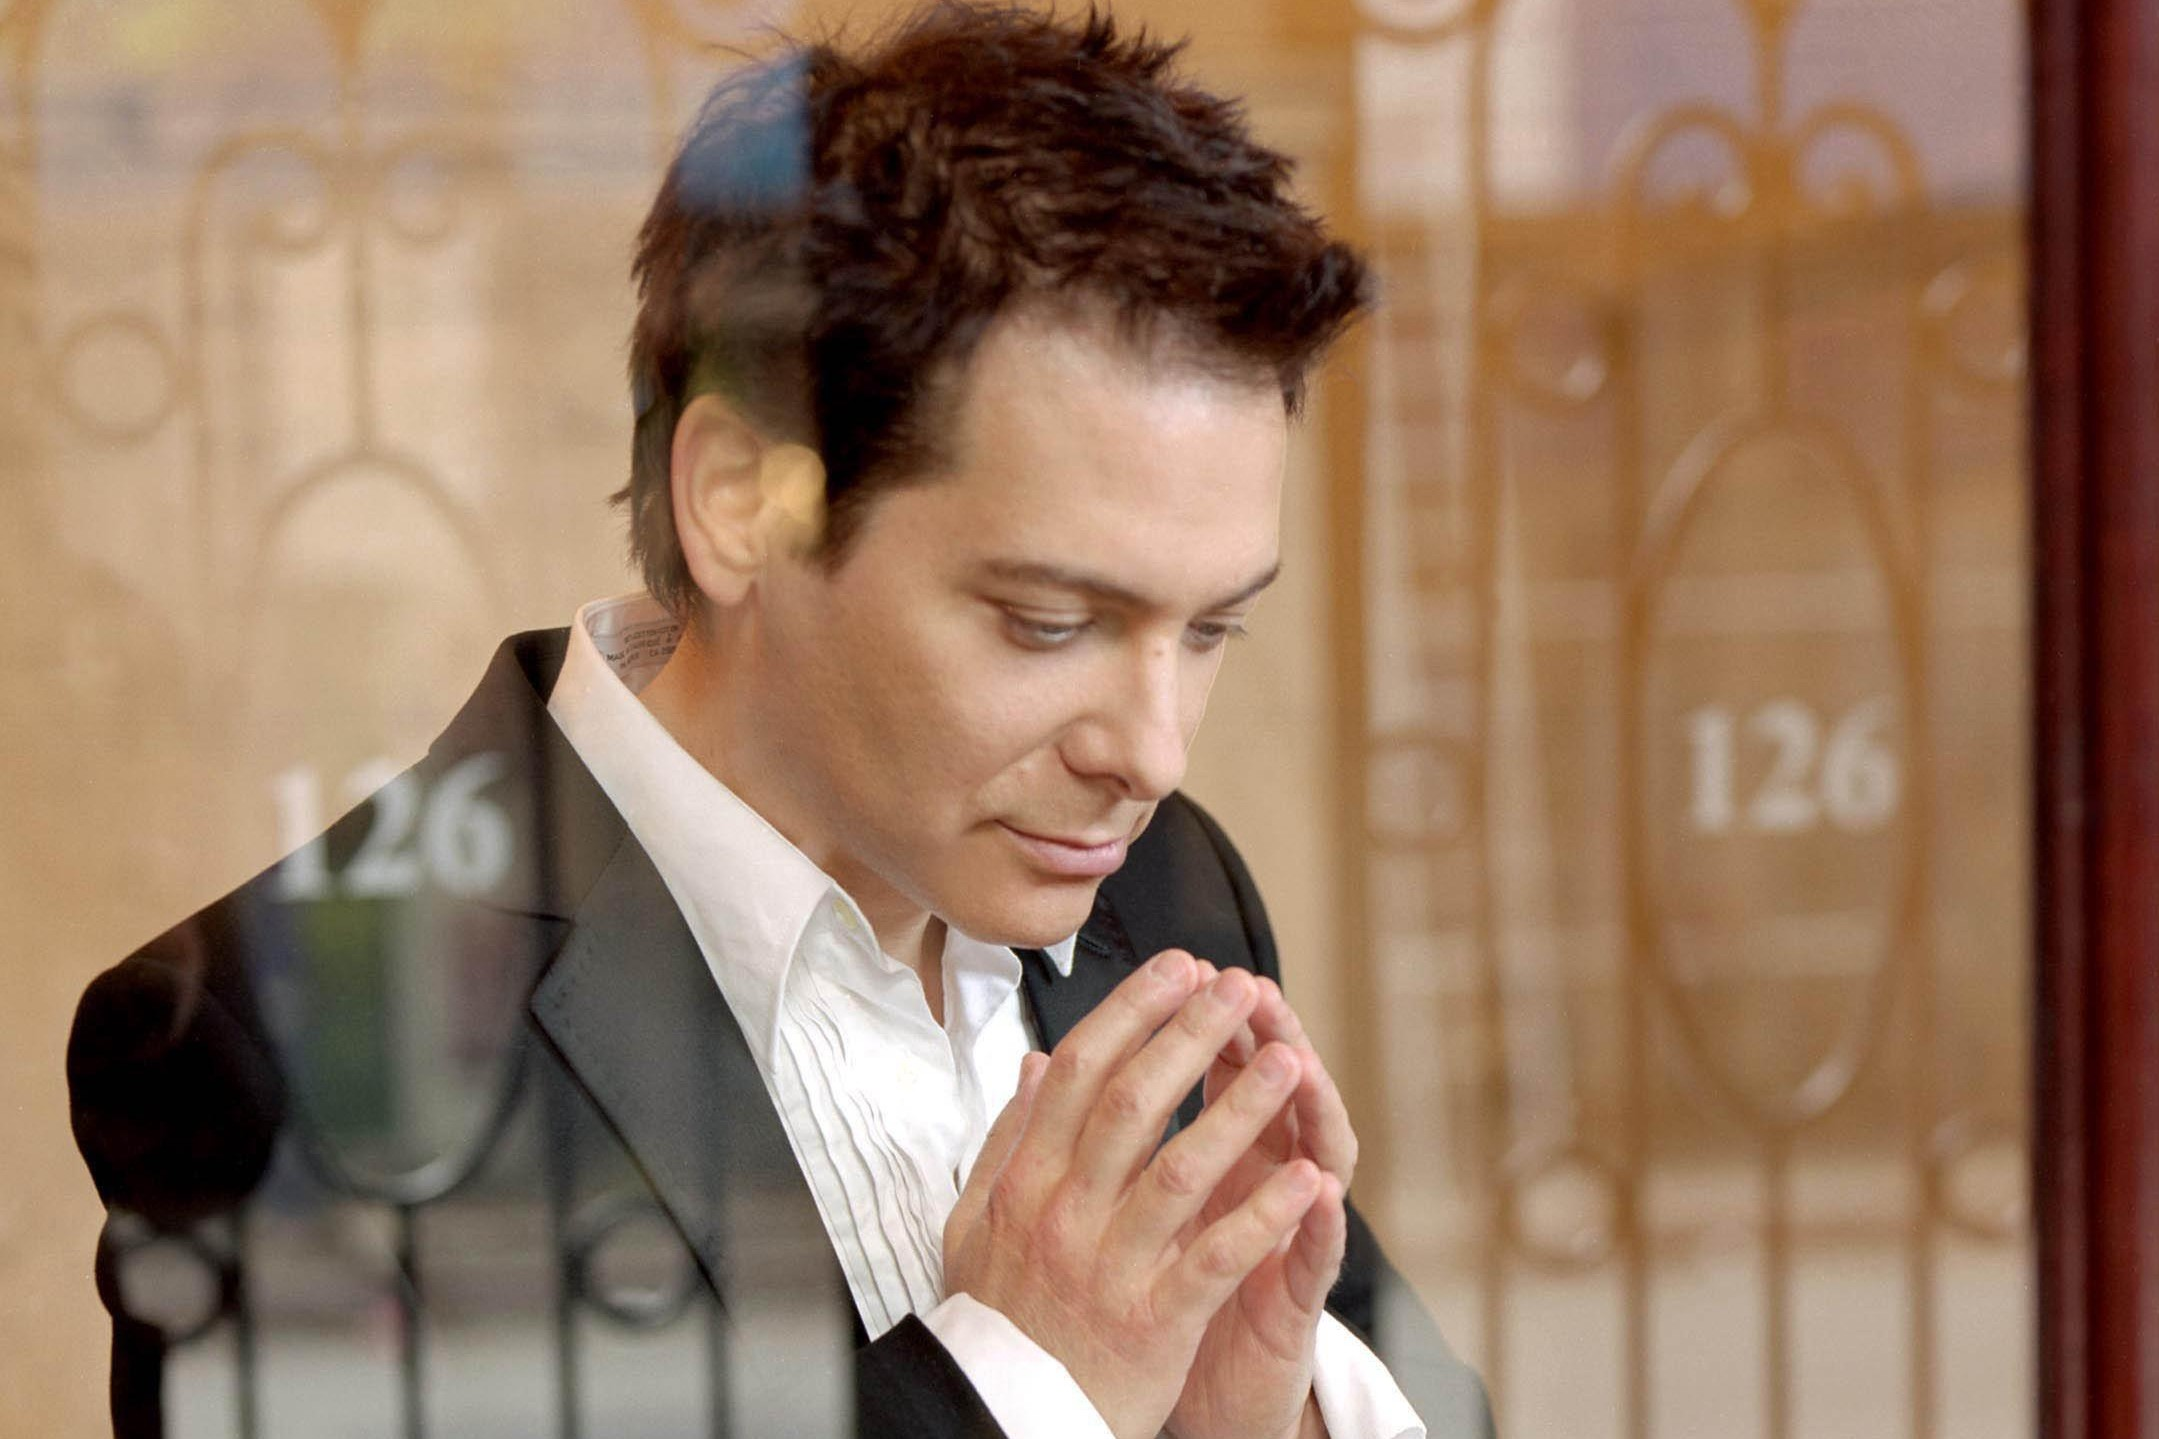 Amazing performance by Michael Feinstein singing a medley of